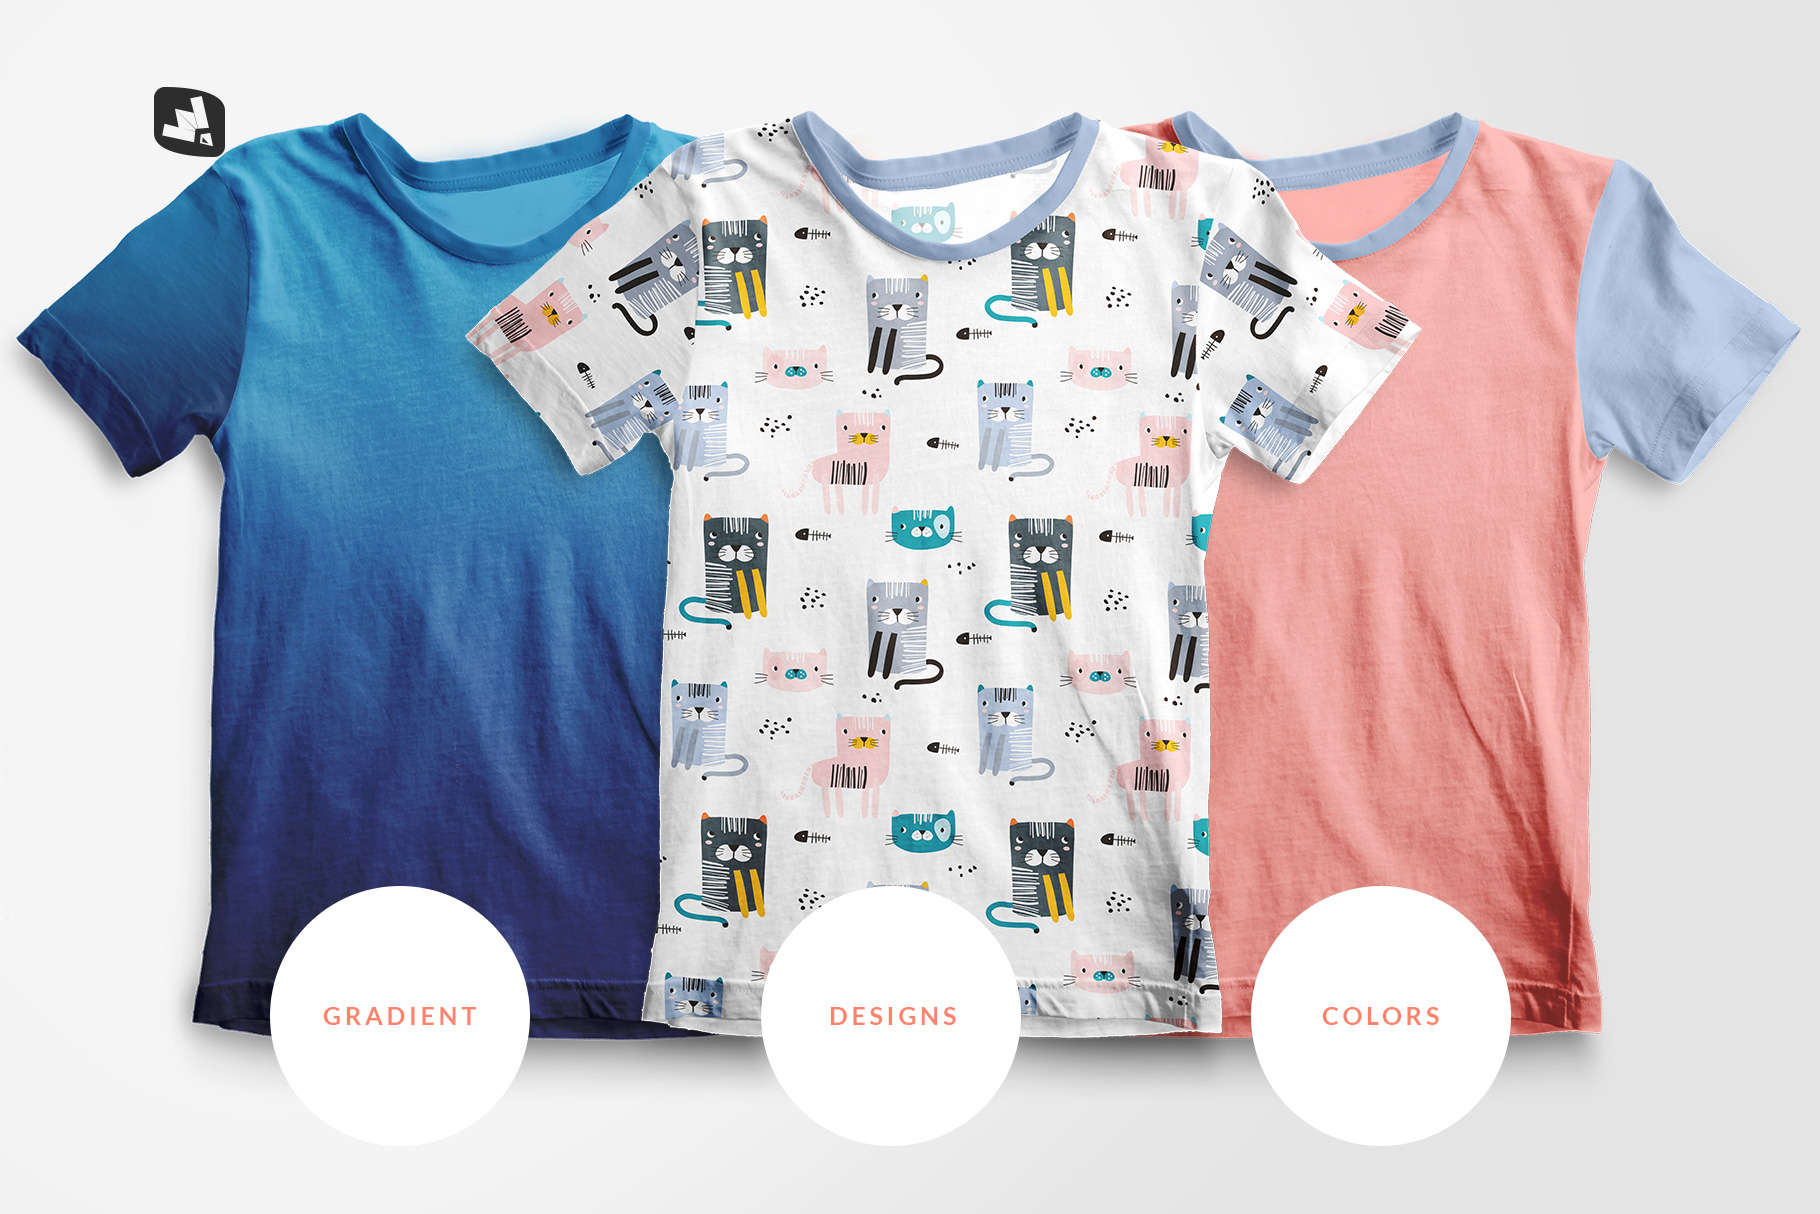 types of the top view boy's summer tshirt mockup